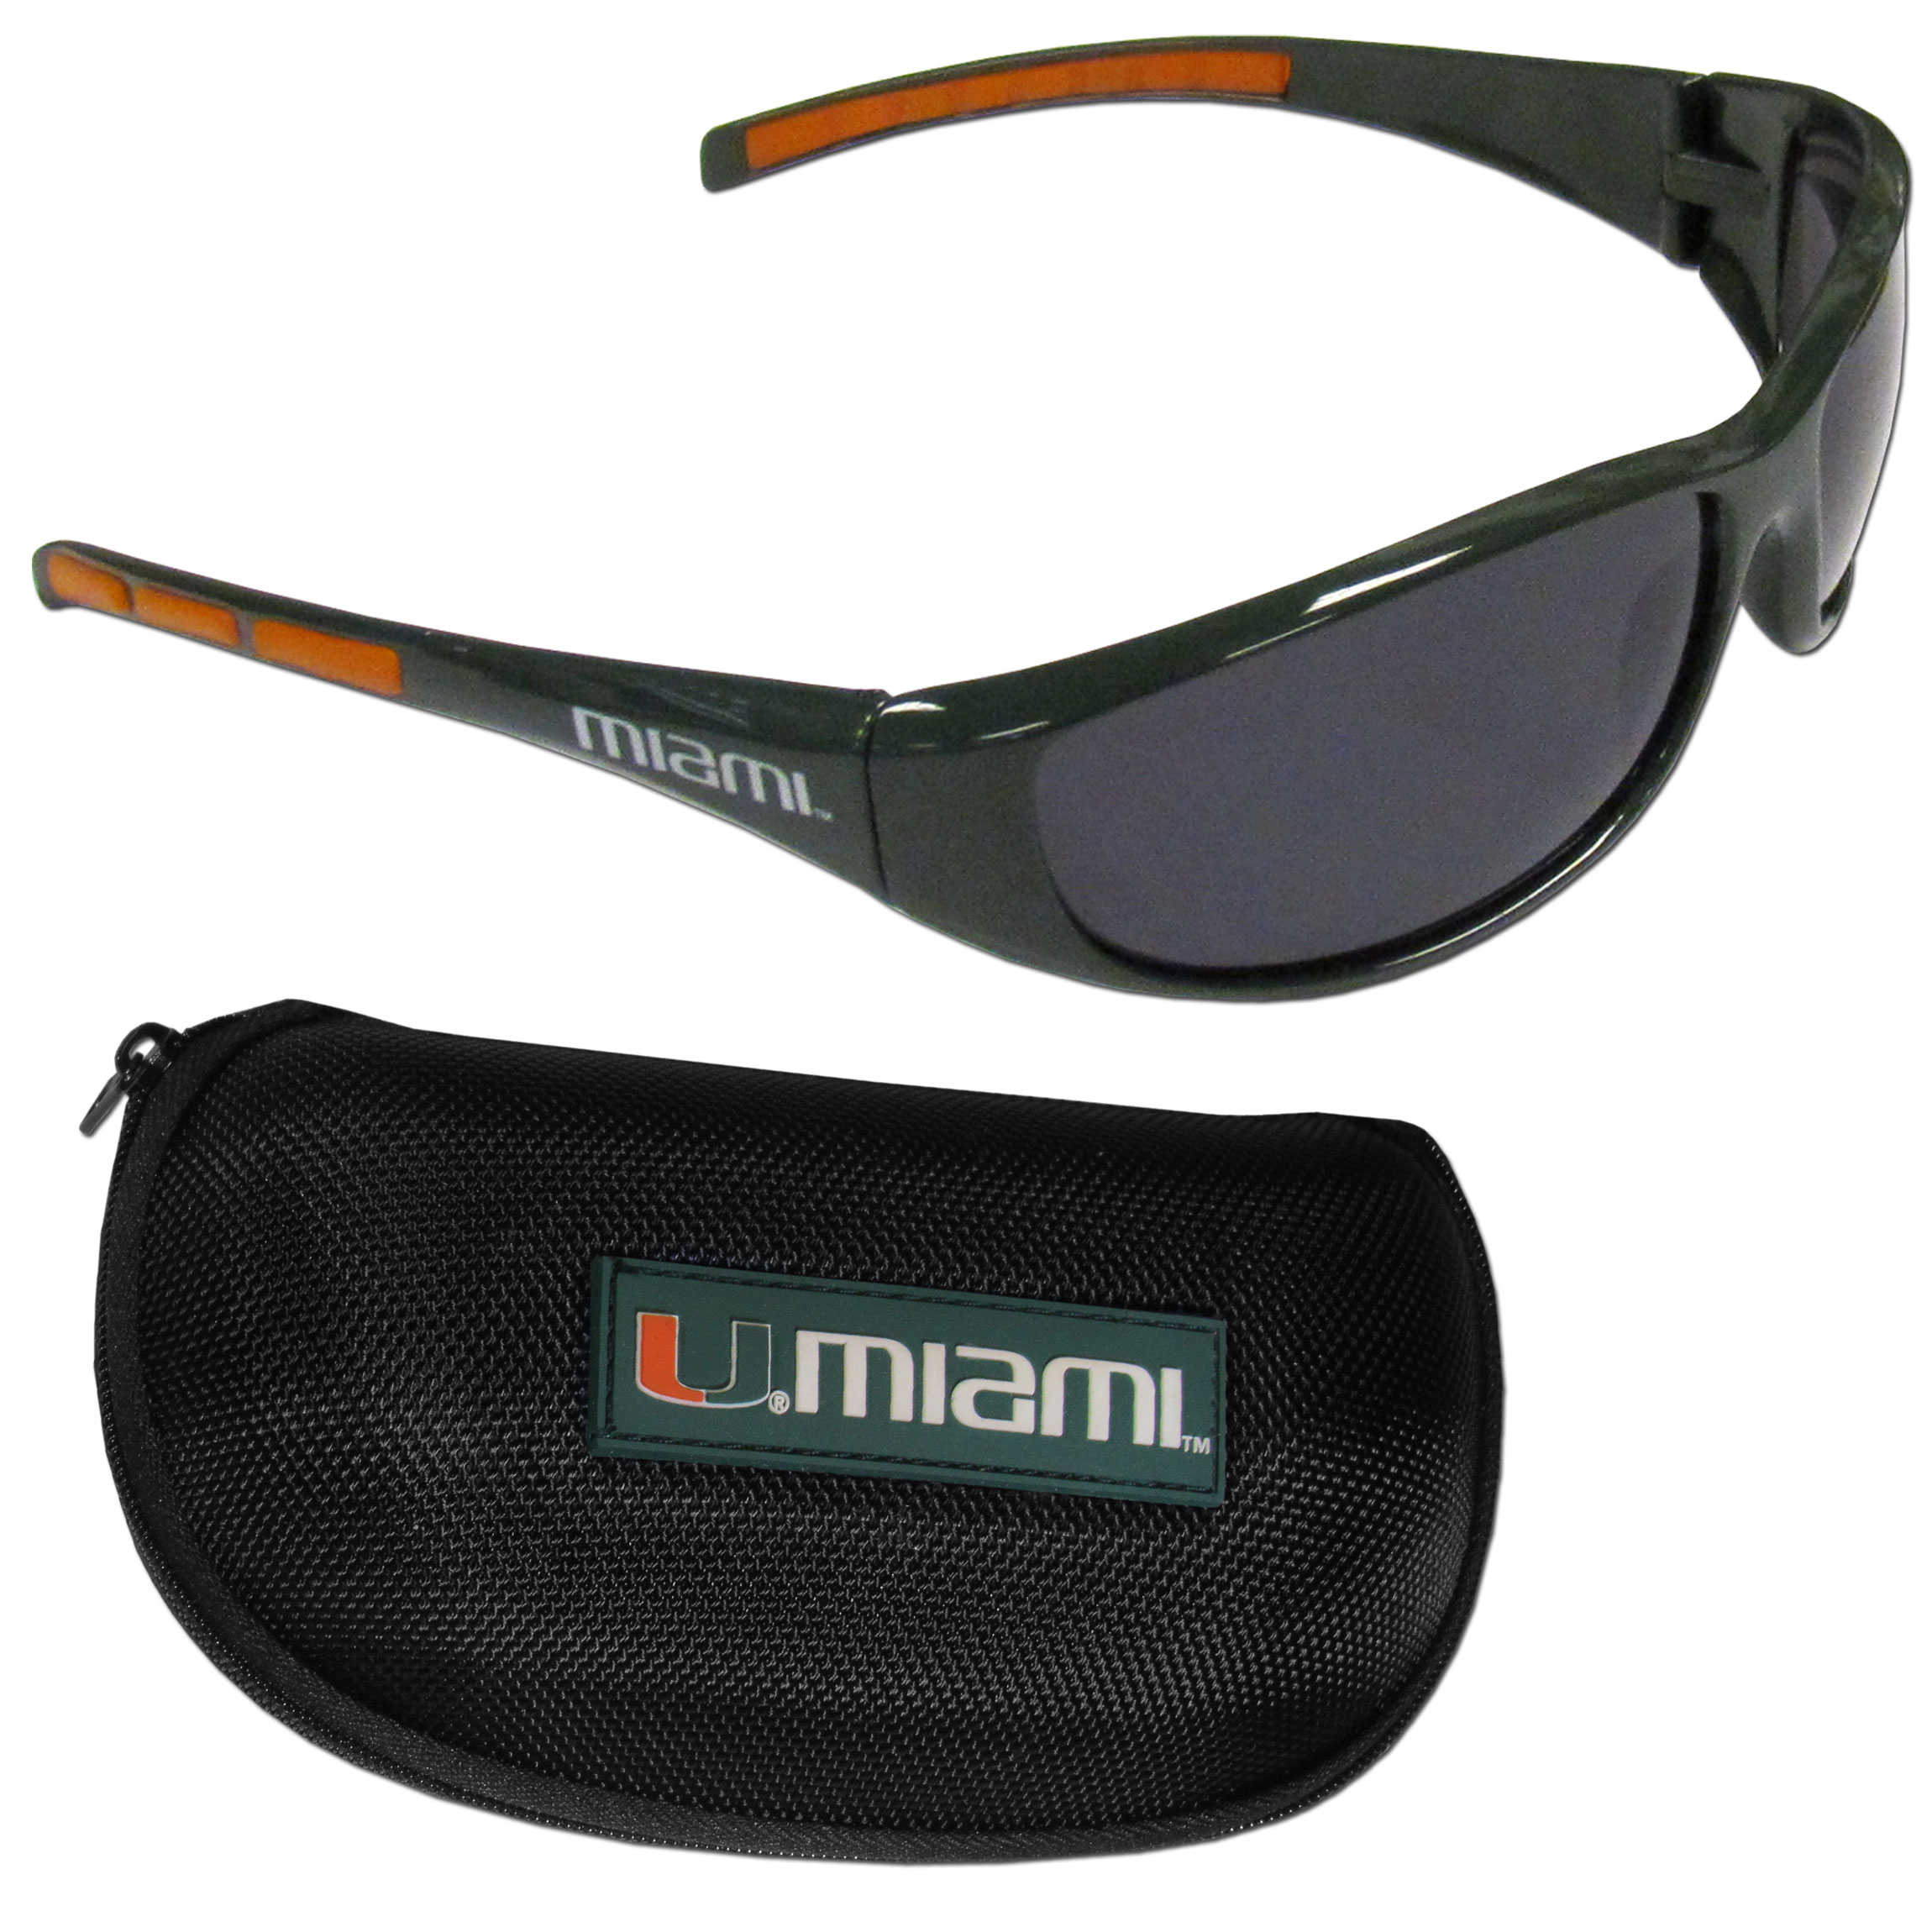 Miami Hurricanes Wrap Sunglass and Case Set - This great set includes a high quality pair of Miami Hurricanes wrap sunglasses and hard carrying case.